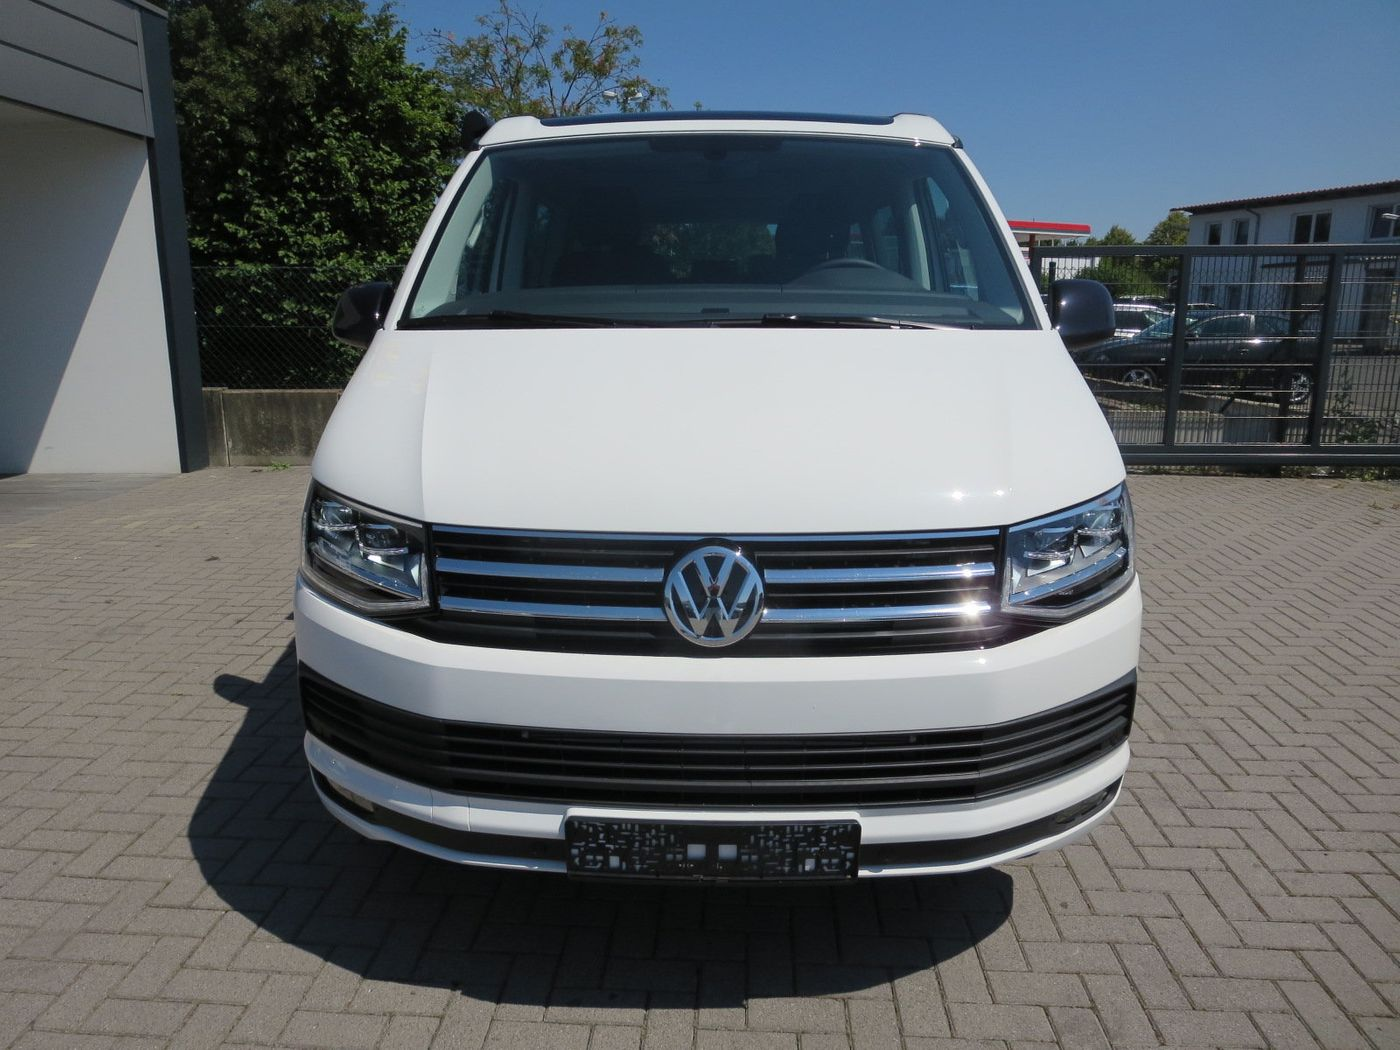 vw t6 california beach tdi dsg edition neuwagen kombi. Black Bedroom Furniture Sets. Home Design Ideas